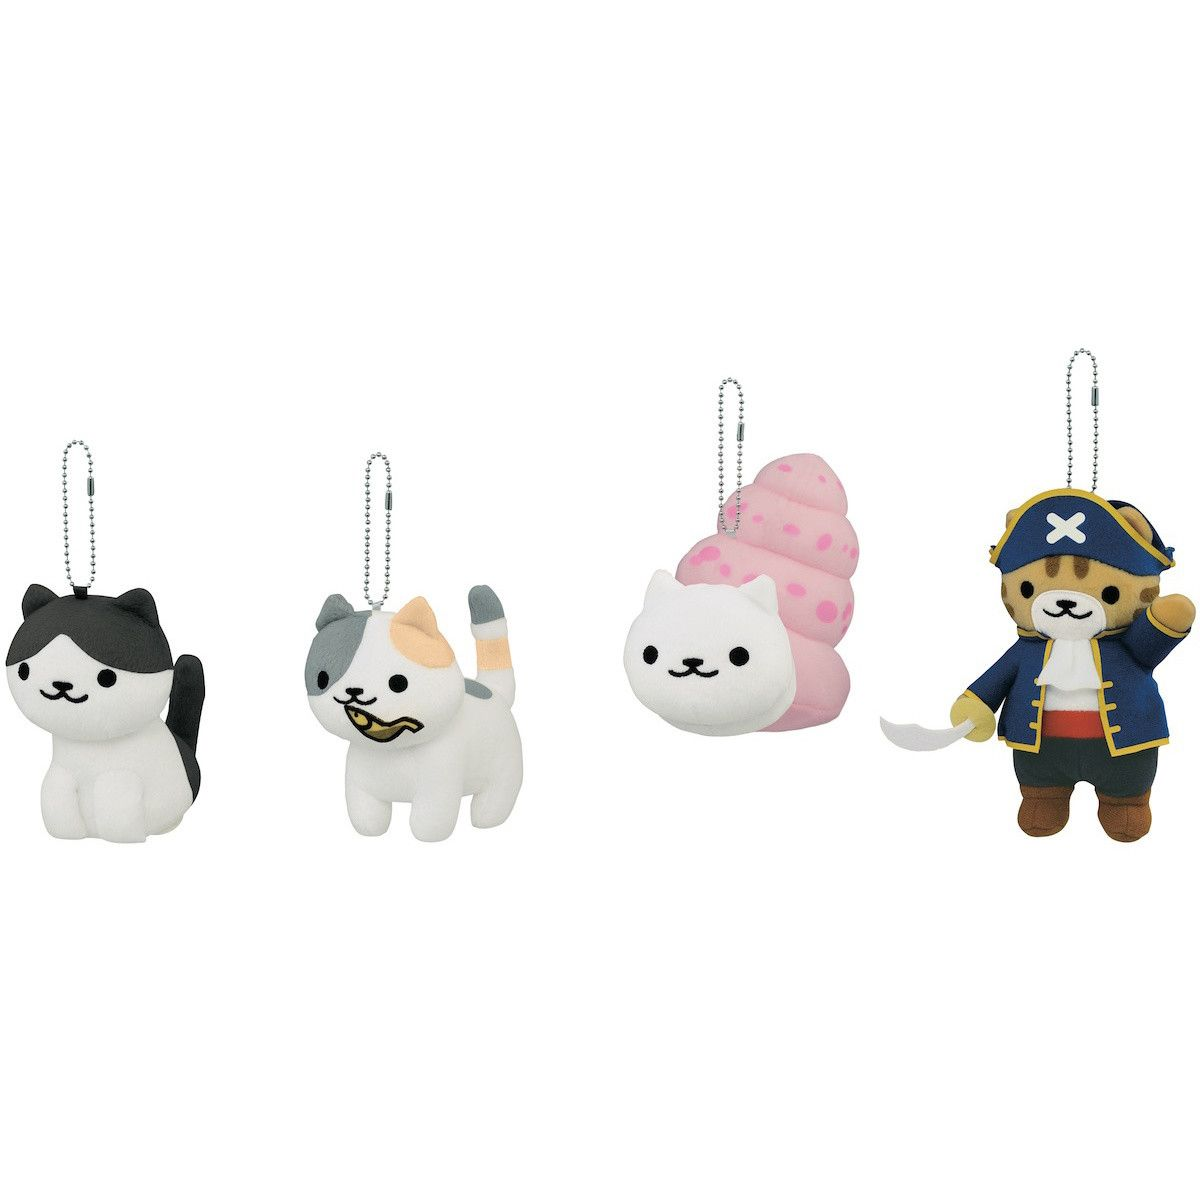 Neko Atsume Big Ball Chain Plush Collection Vol. 18 | Ball chain ...